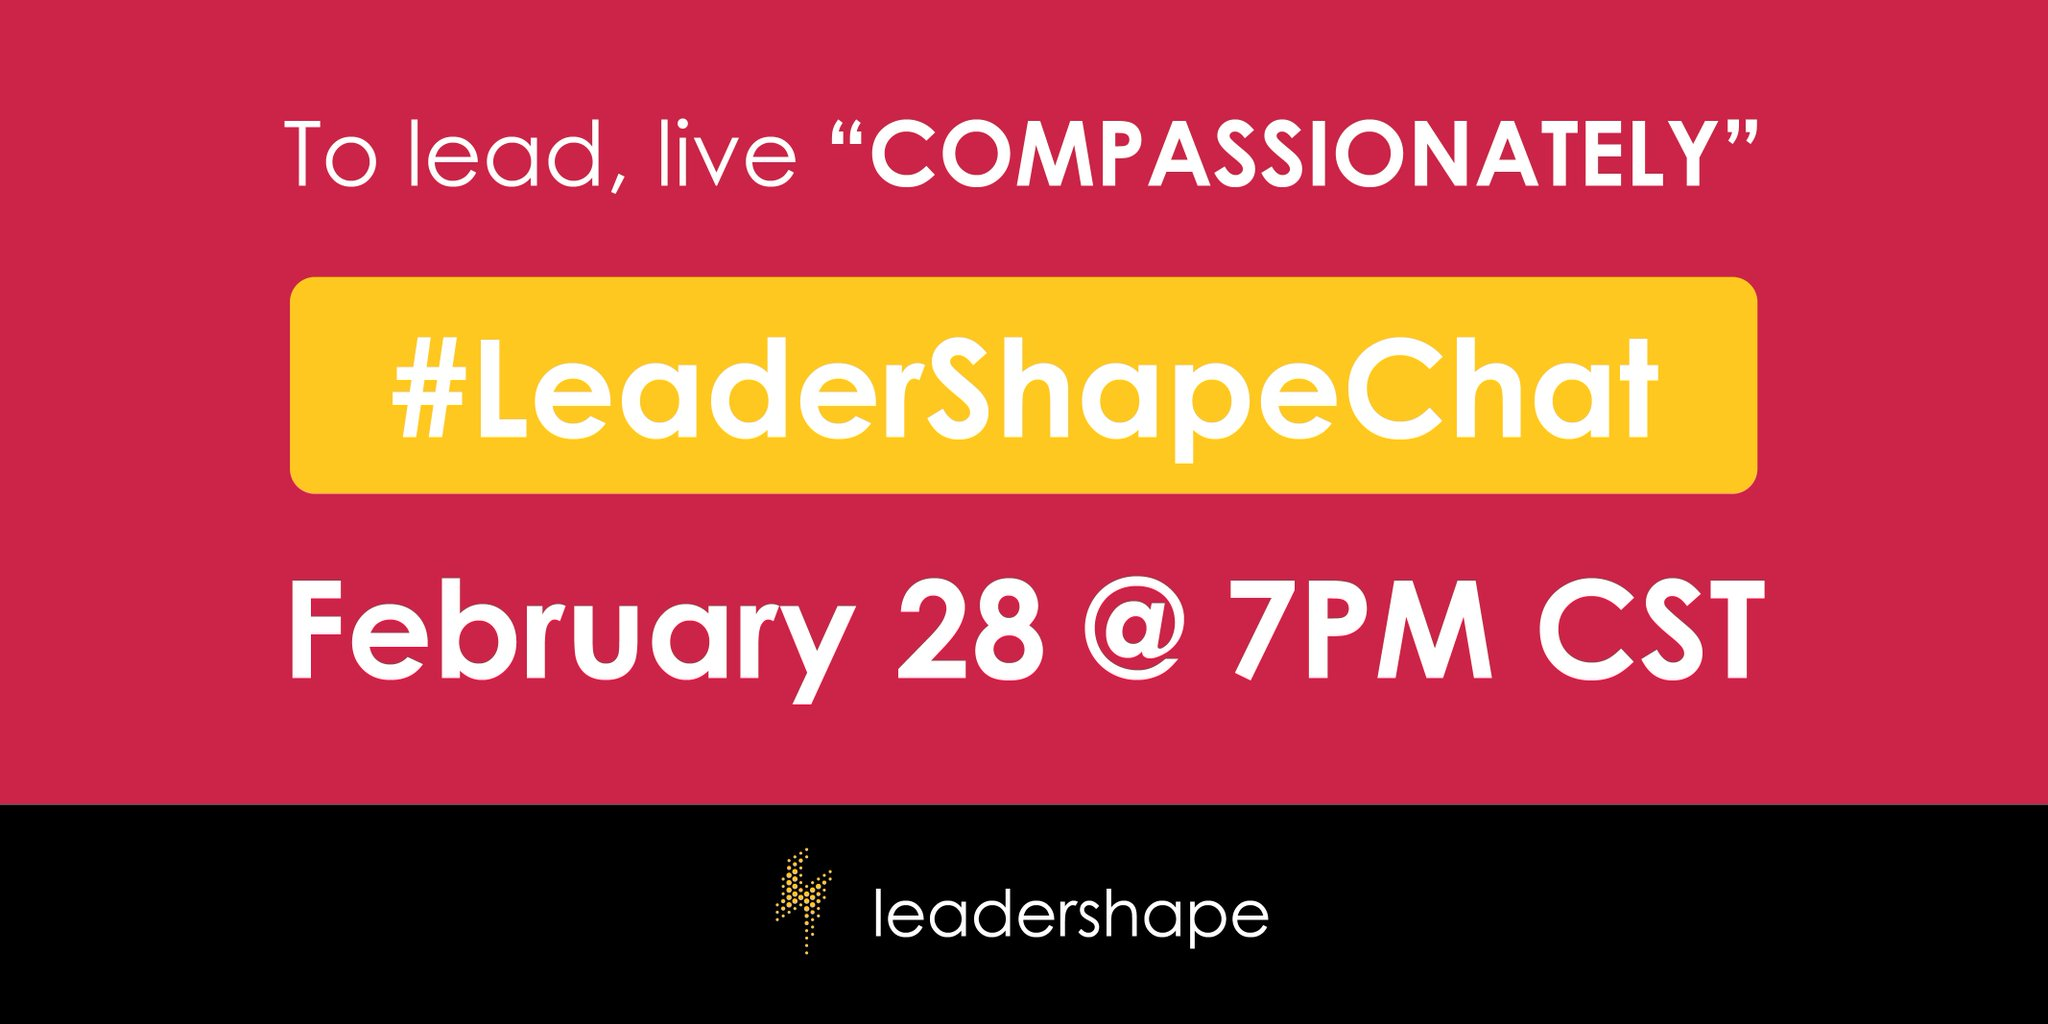 Compassion, self-care and leadership - you don't want to miss our next #LeaderShapeChat! https://t.co/0z7mGtXxSZ